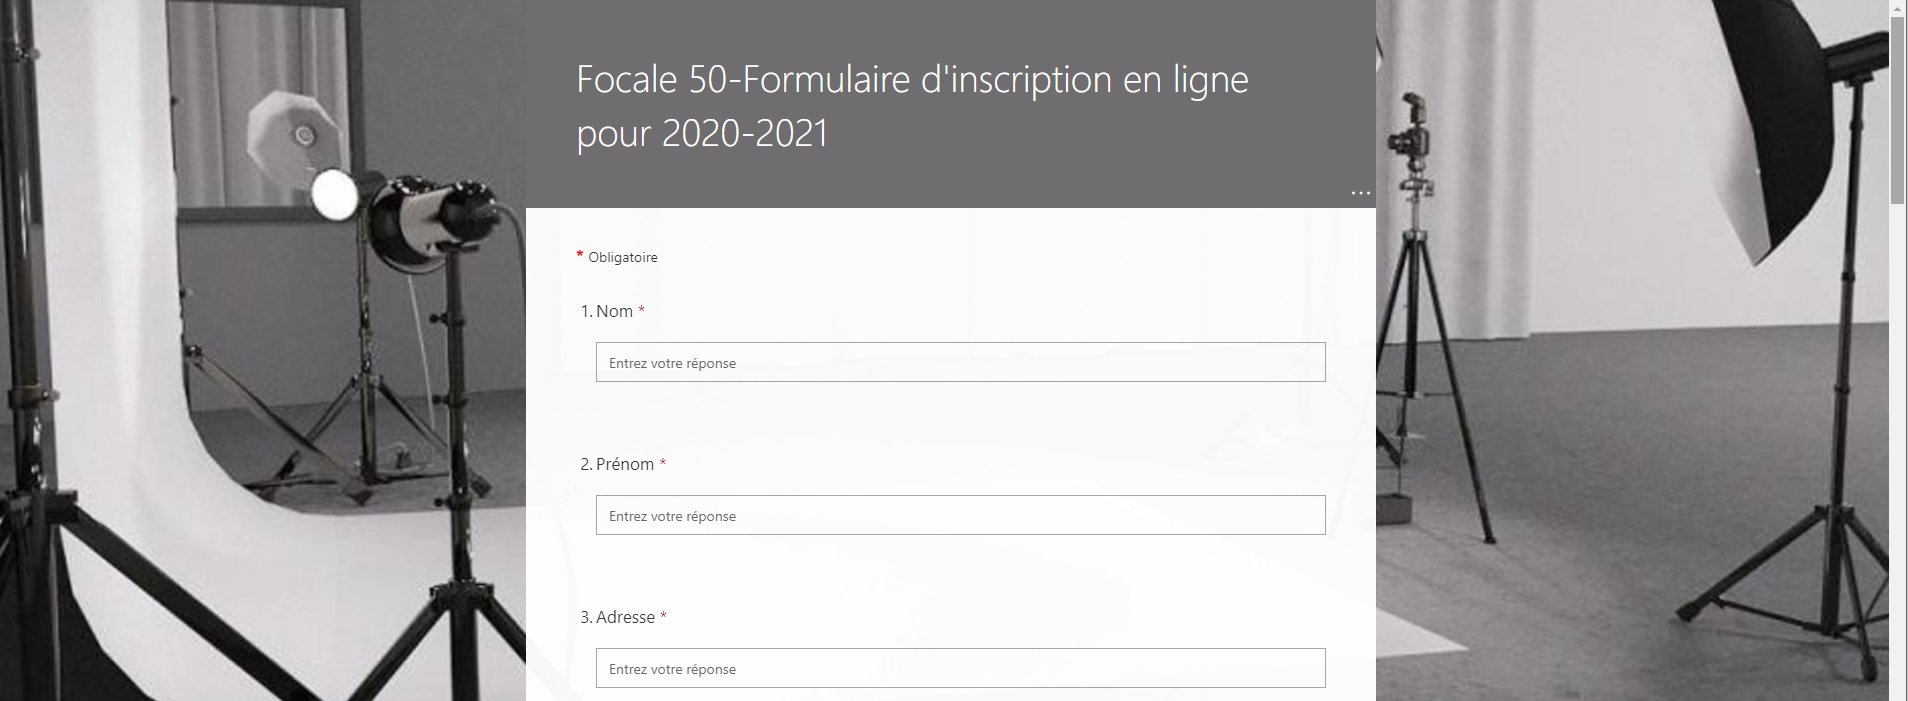 inscription en ligne F50